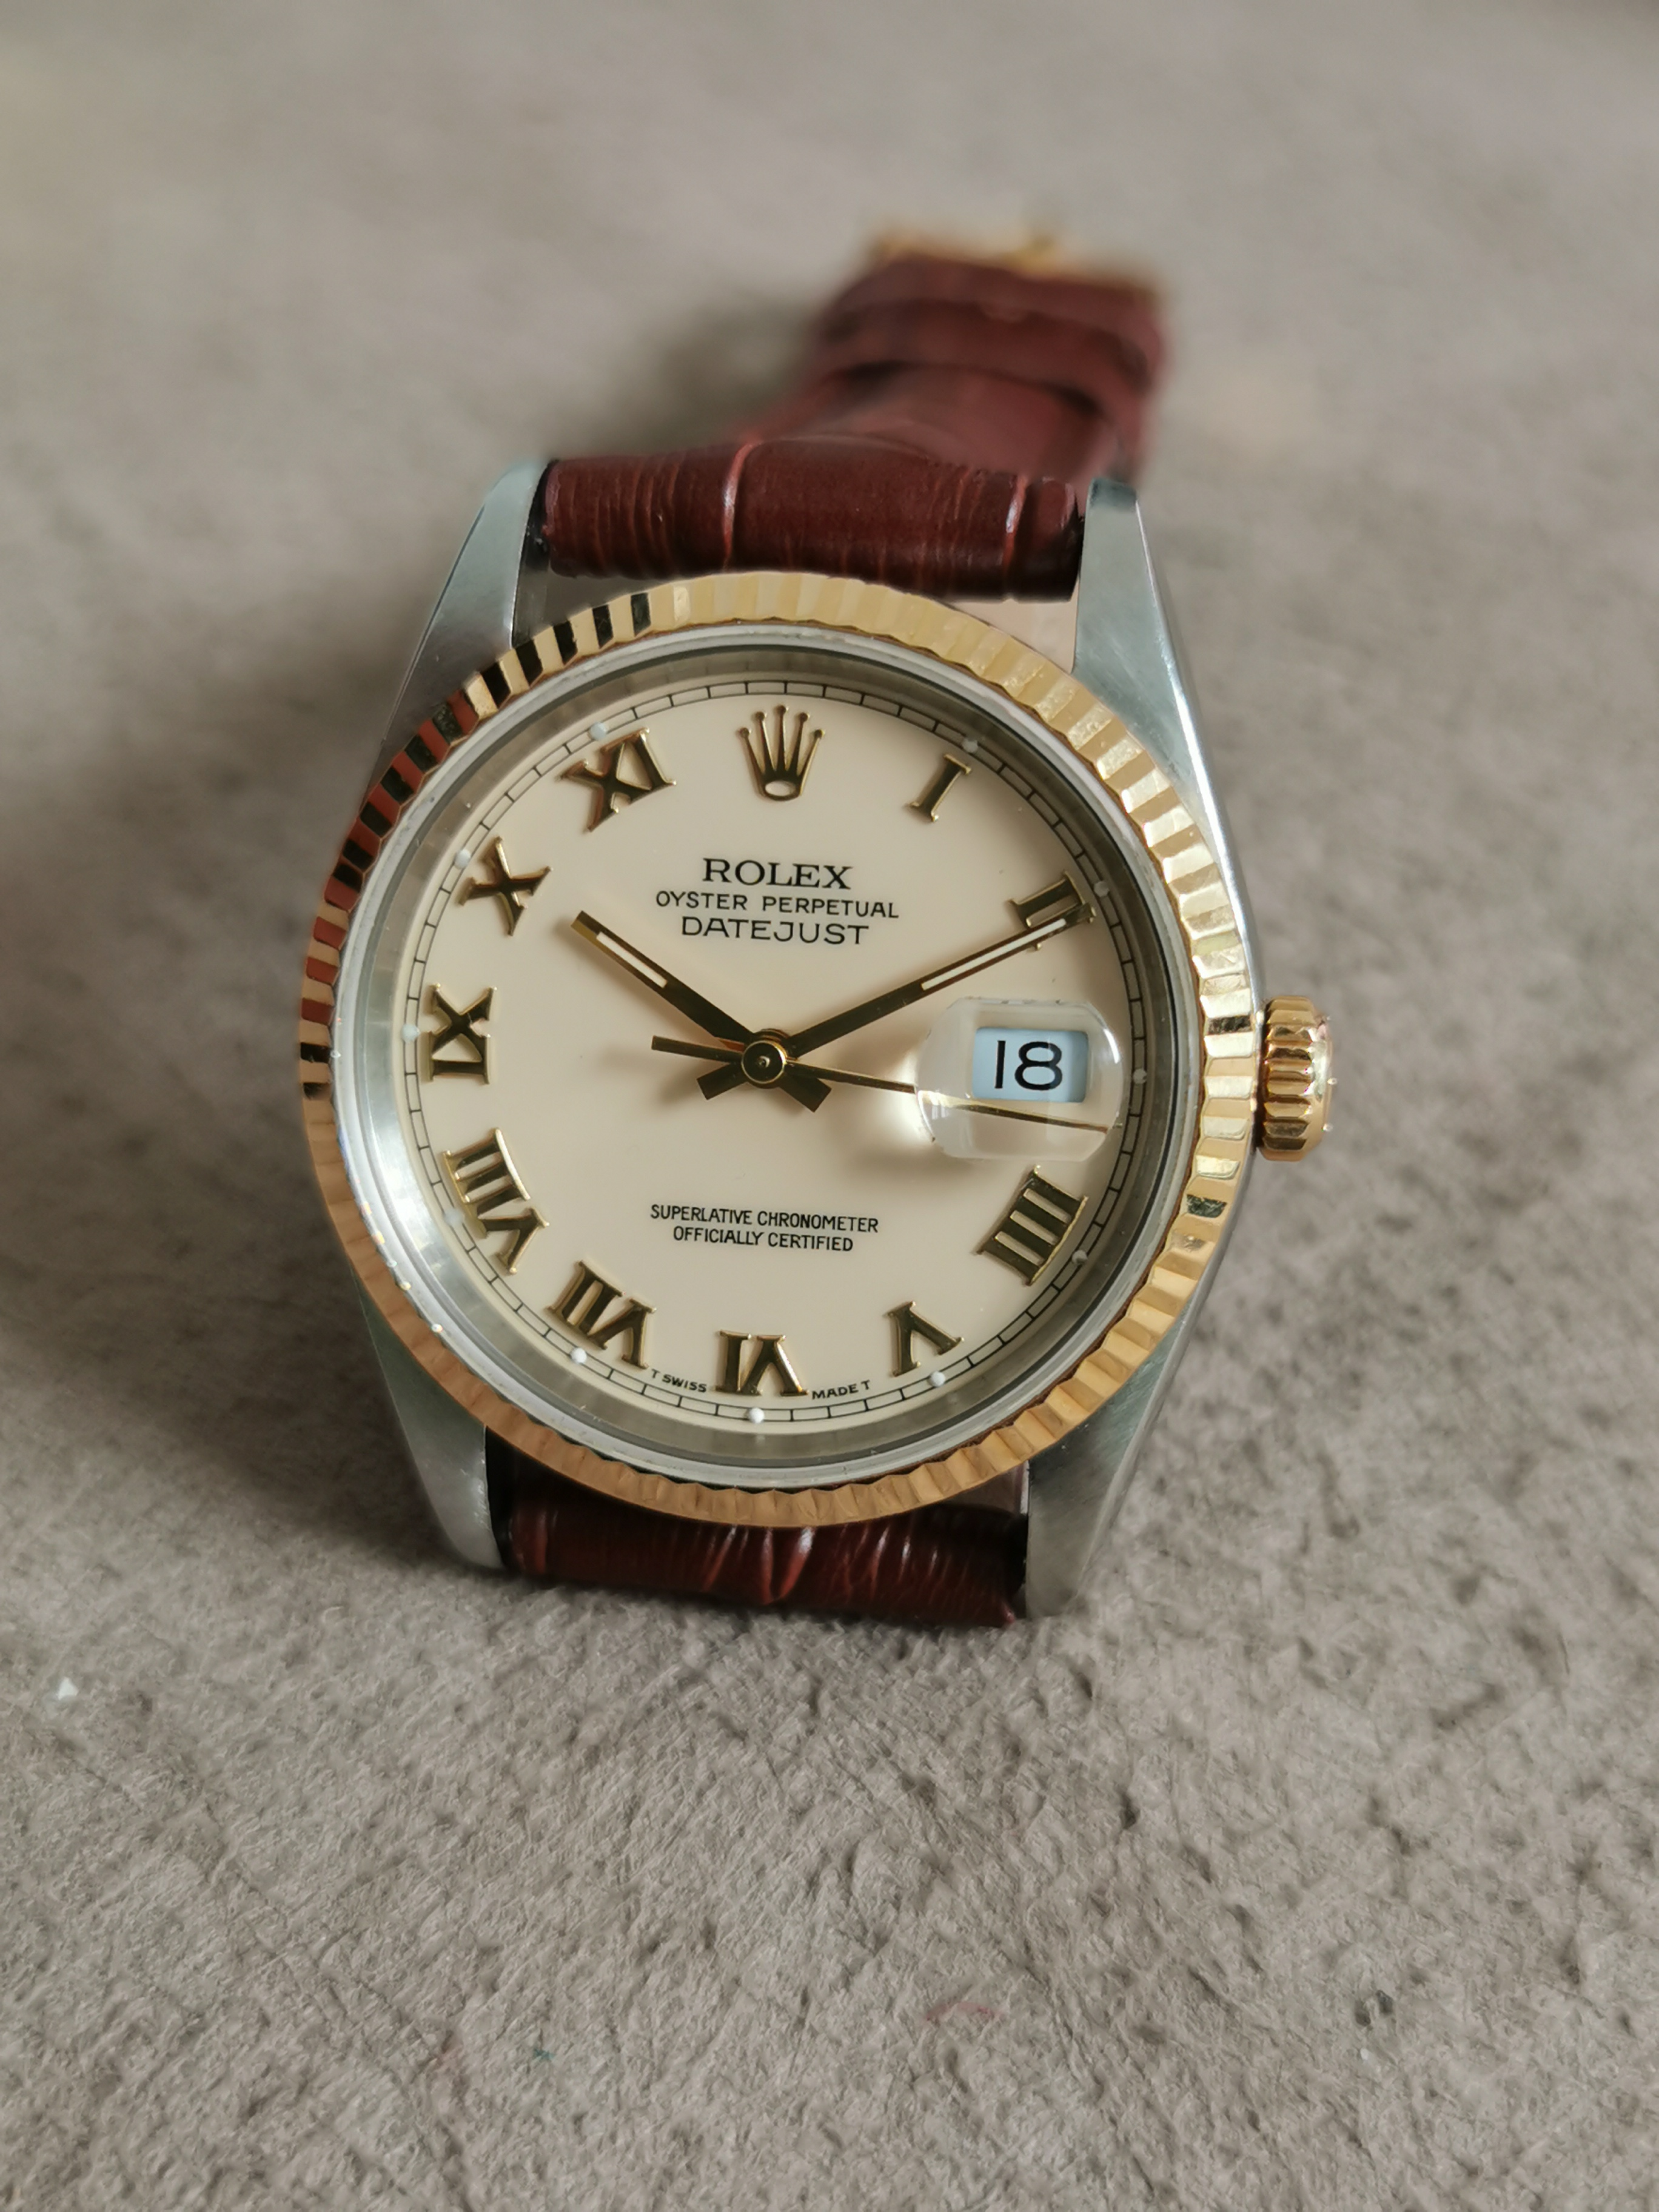 Rolex Datejust Datejust Steel Yellow Gold 18 Kt Ivory Roman Dial Men's Watch 16233 Leather Strap 1991 | San Giorgio a Cremano